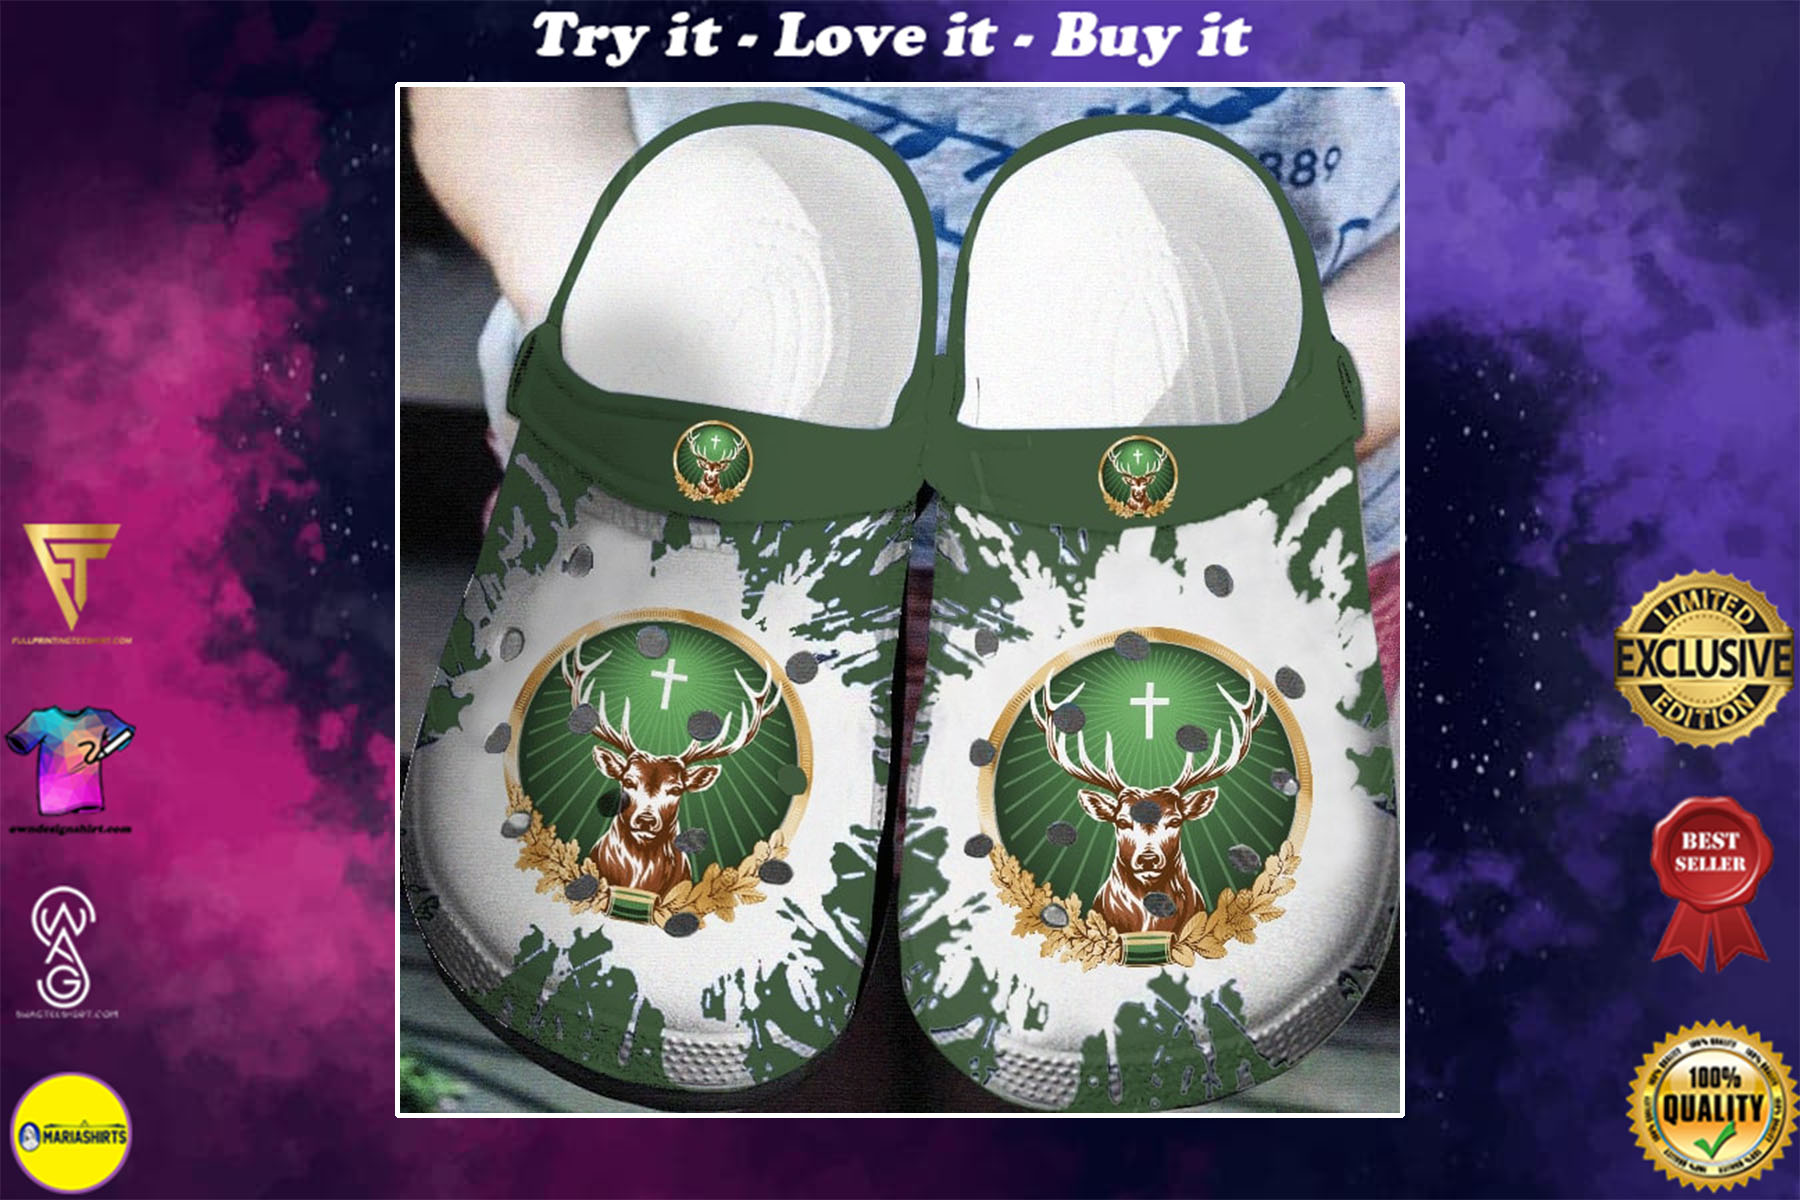 [special edition] master of the hunt jagermeister crocs shoes - maria